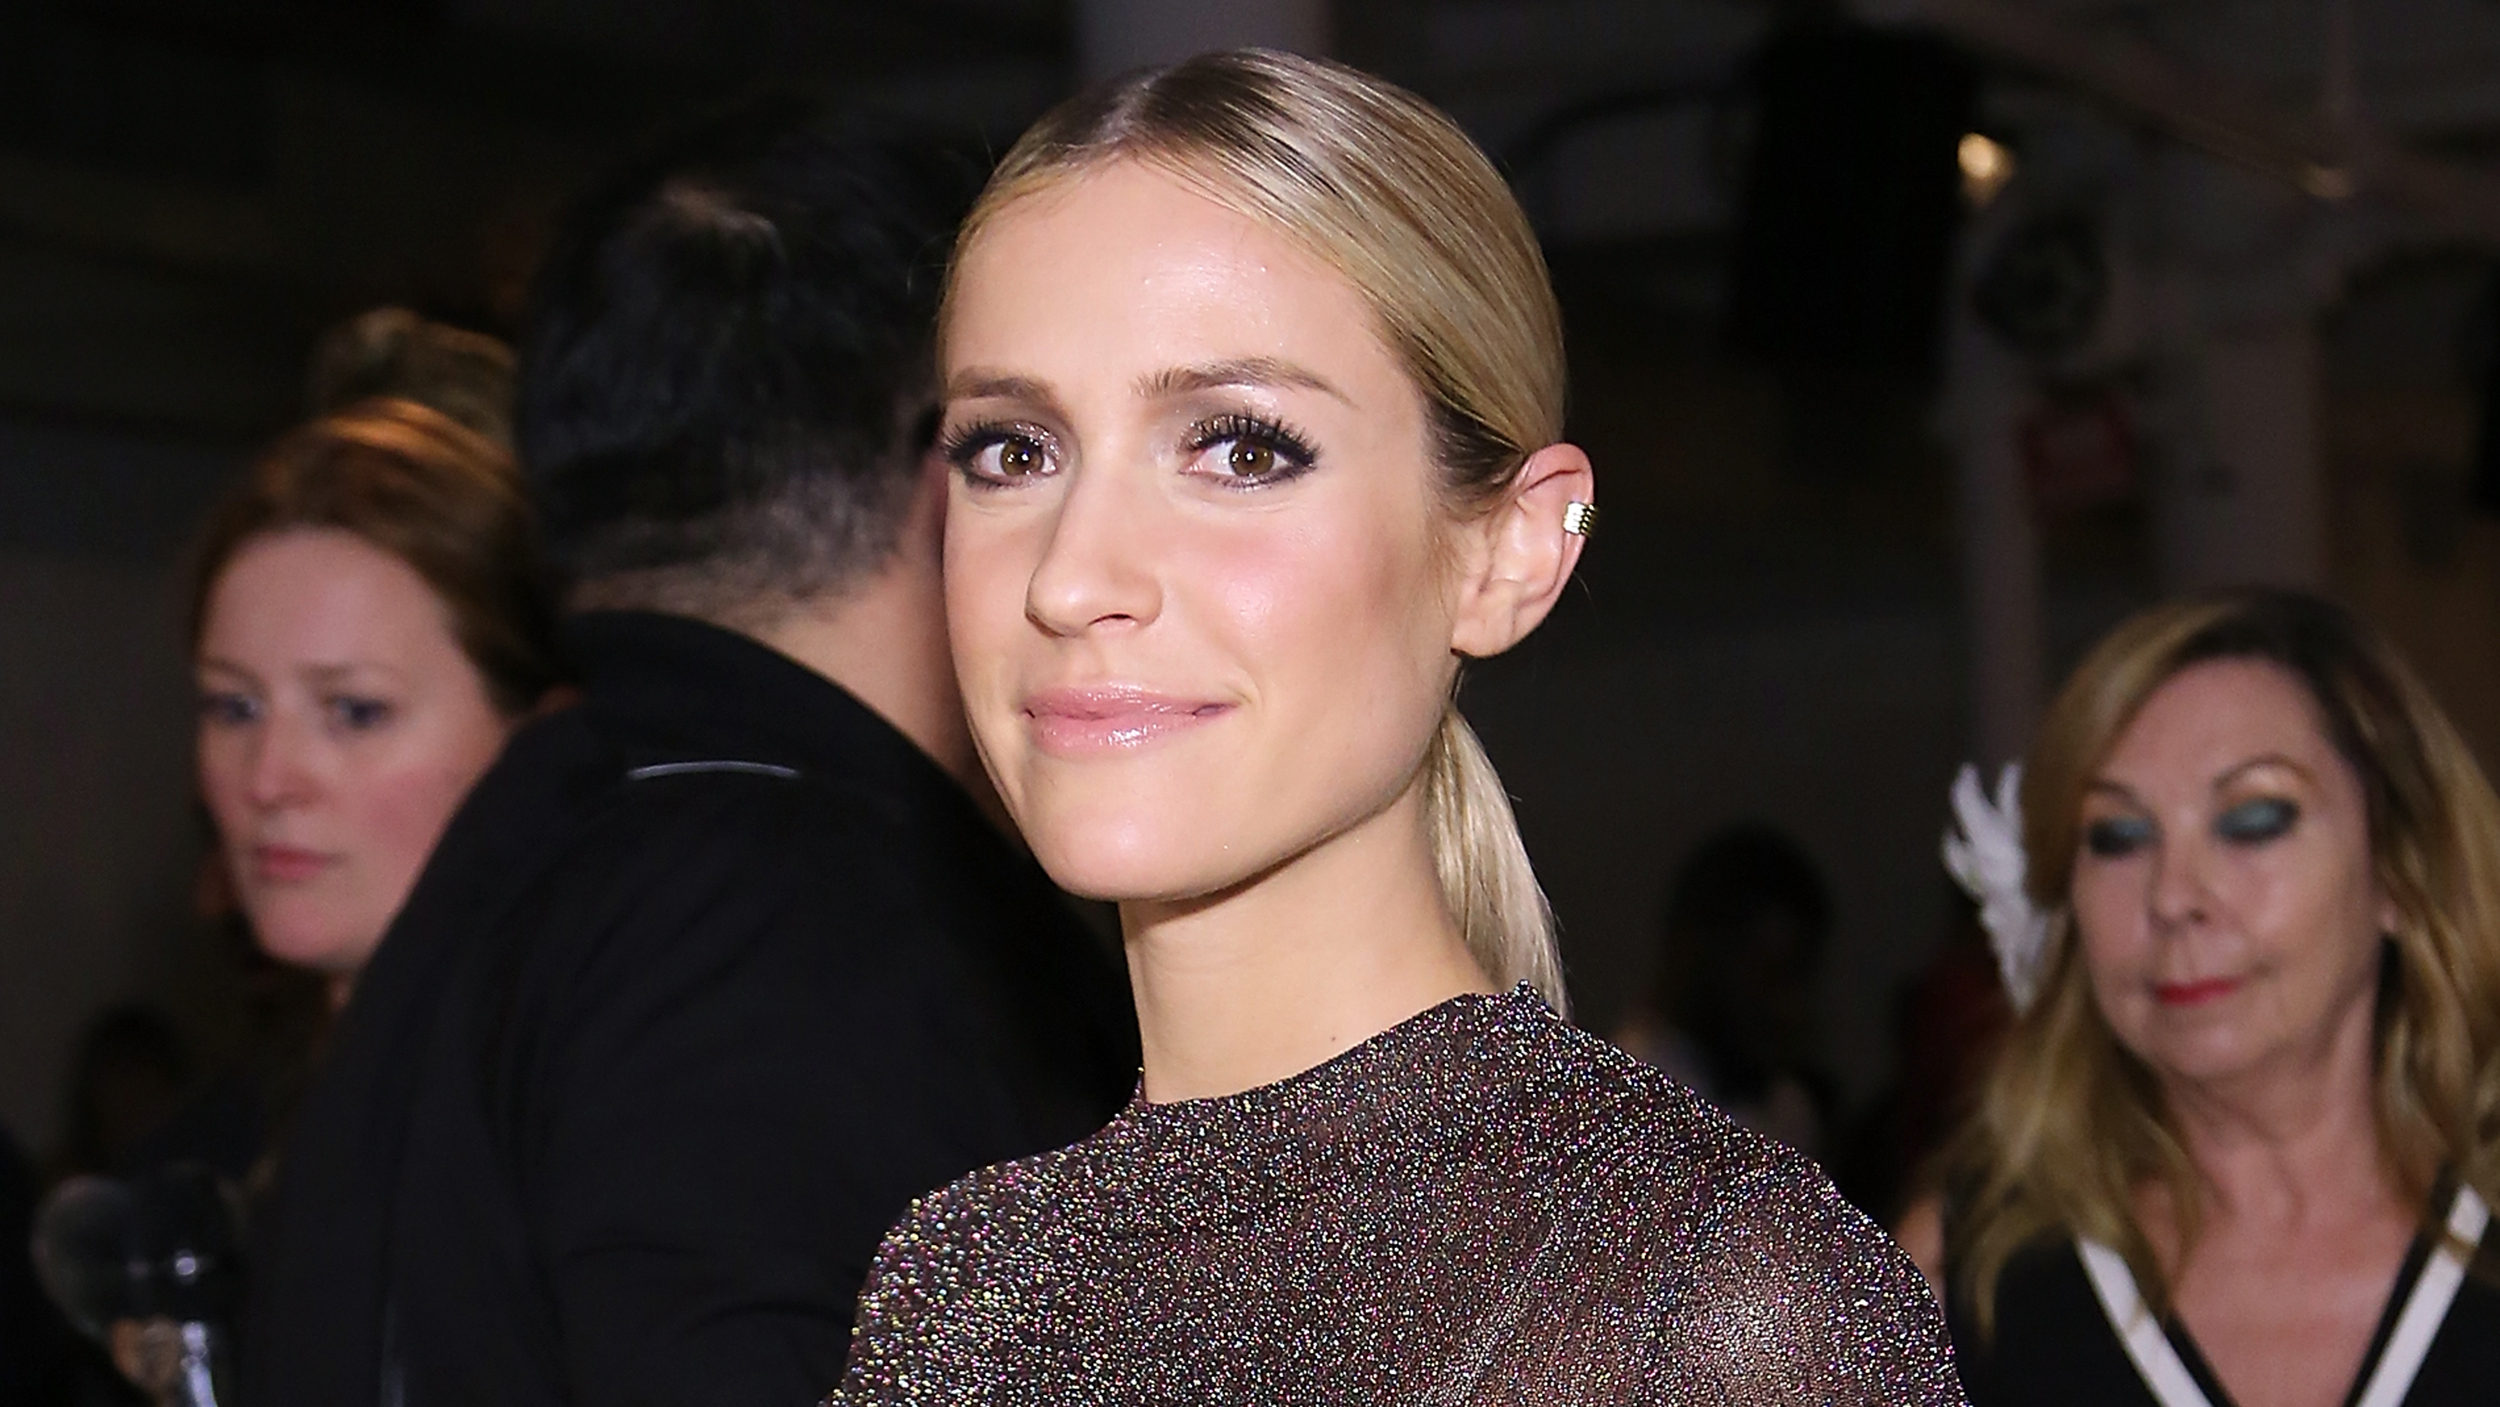 Kristin Cavallari Holds Baby For First Time Since Accident